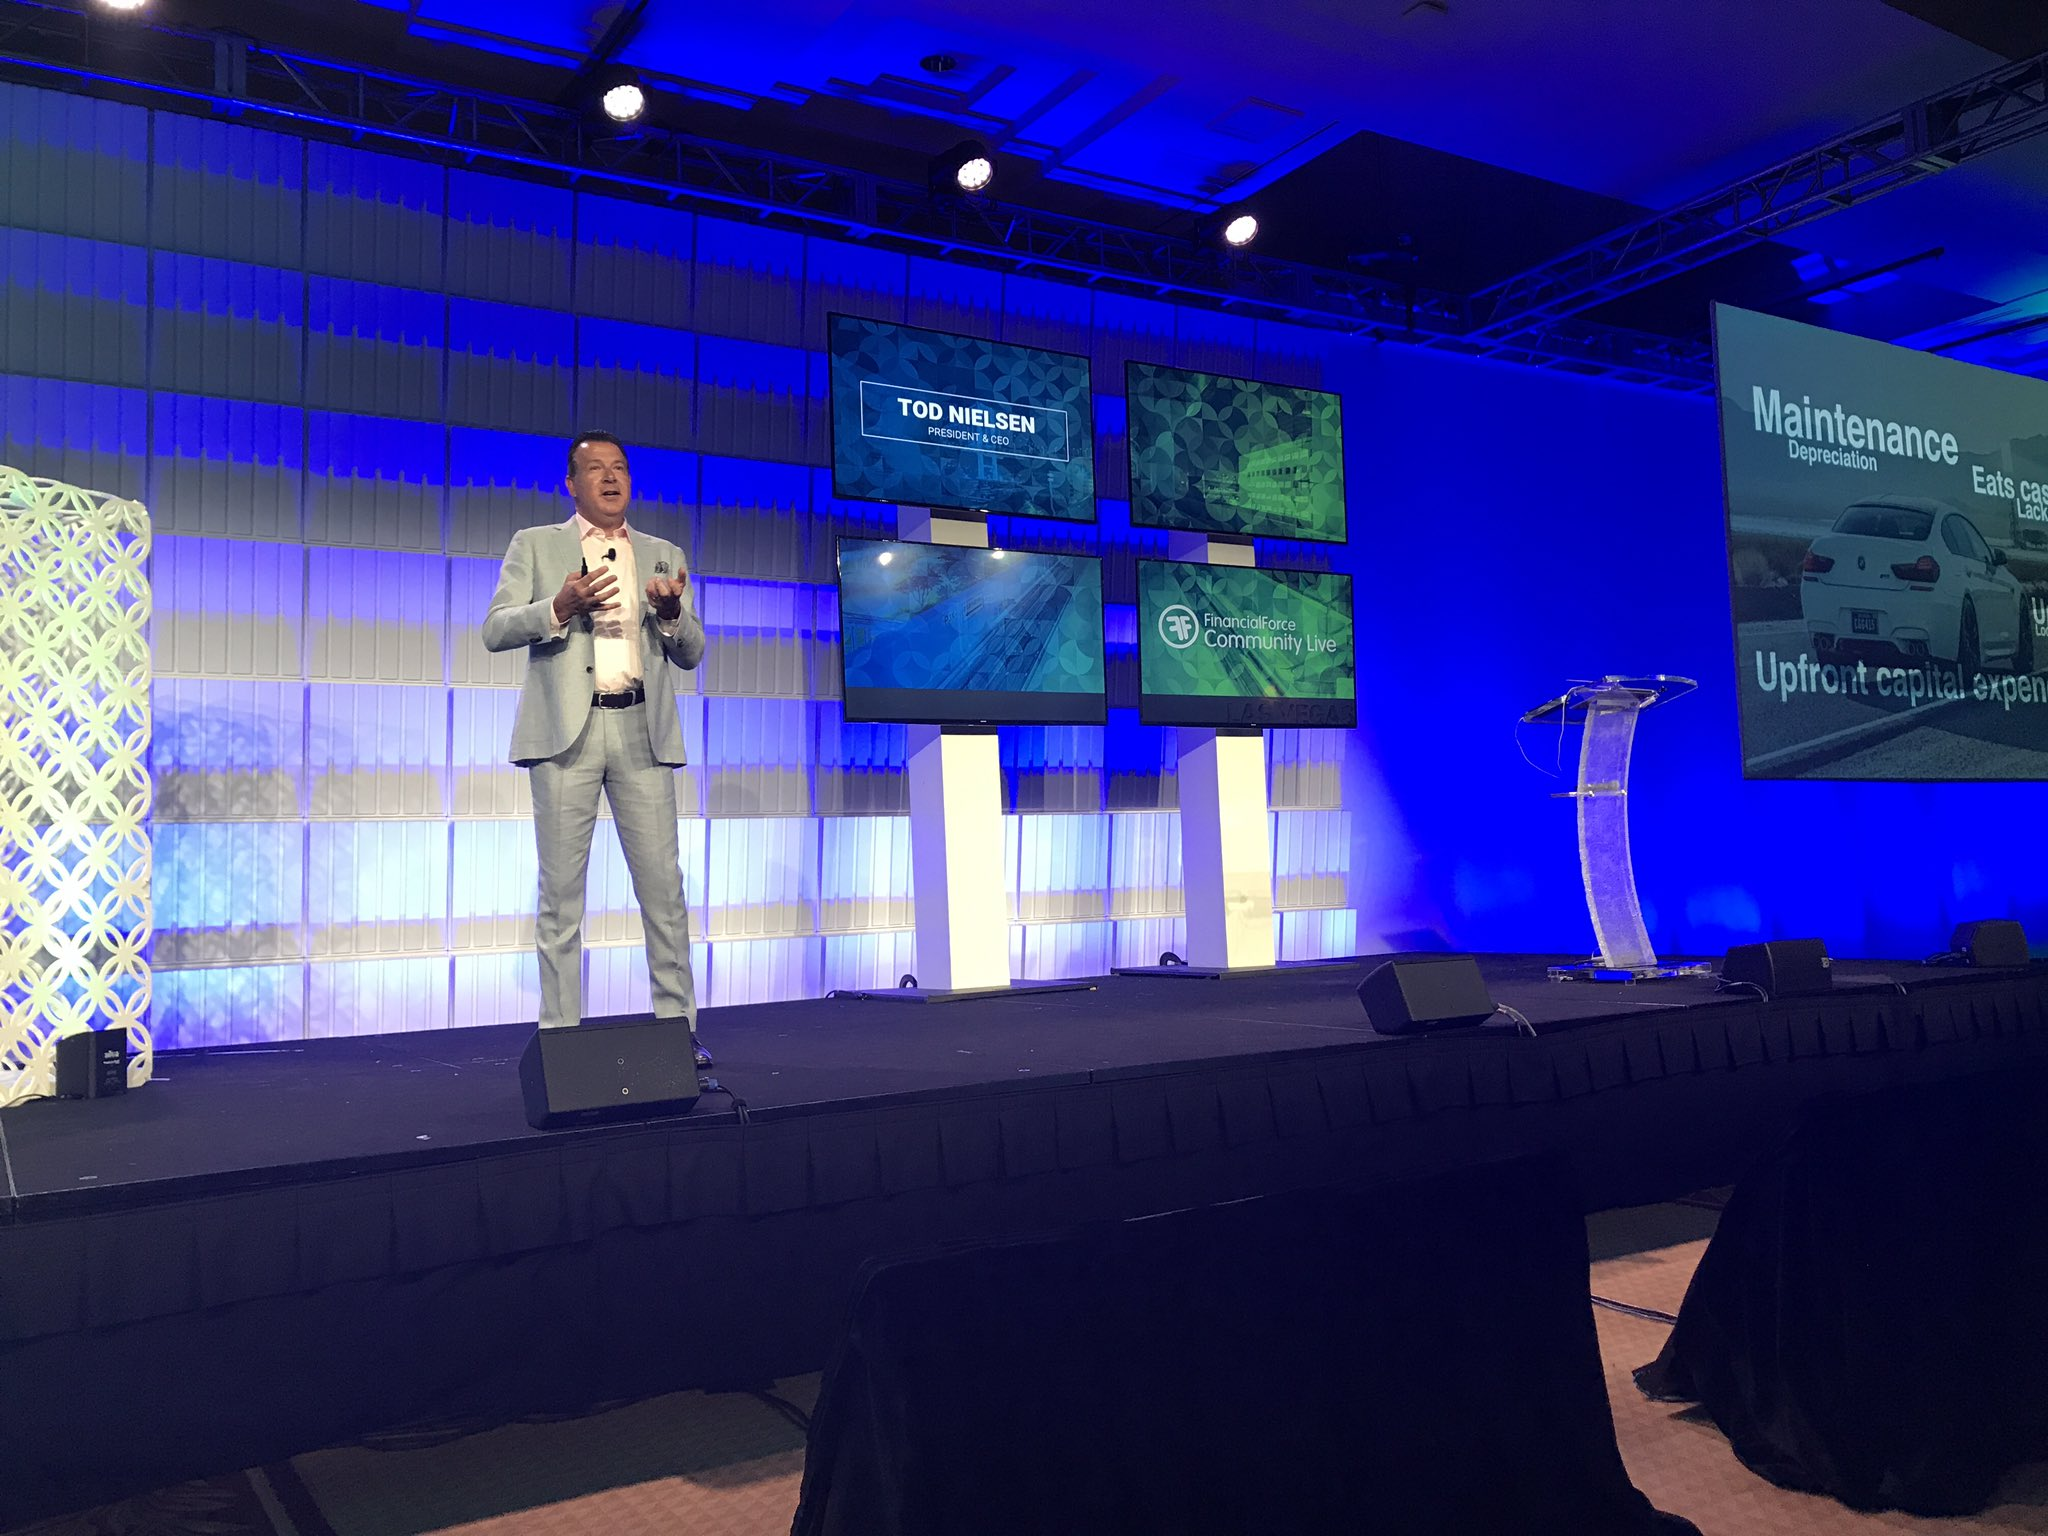 Data protection and security will drive organisations to move to the cloud says Tod Nielsen @FinancialForce #ffcomm17 https://t.co/r7vUHEVW93